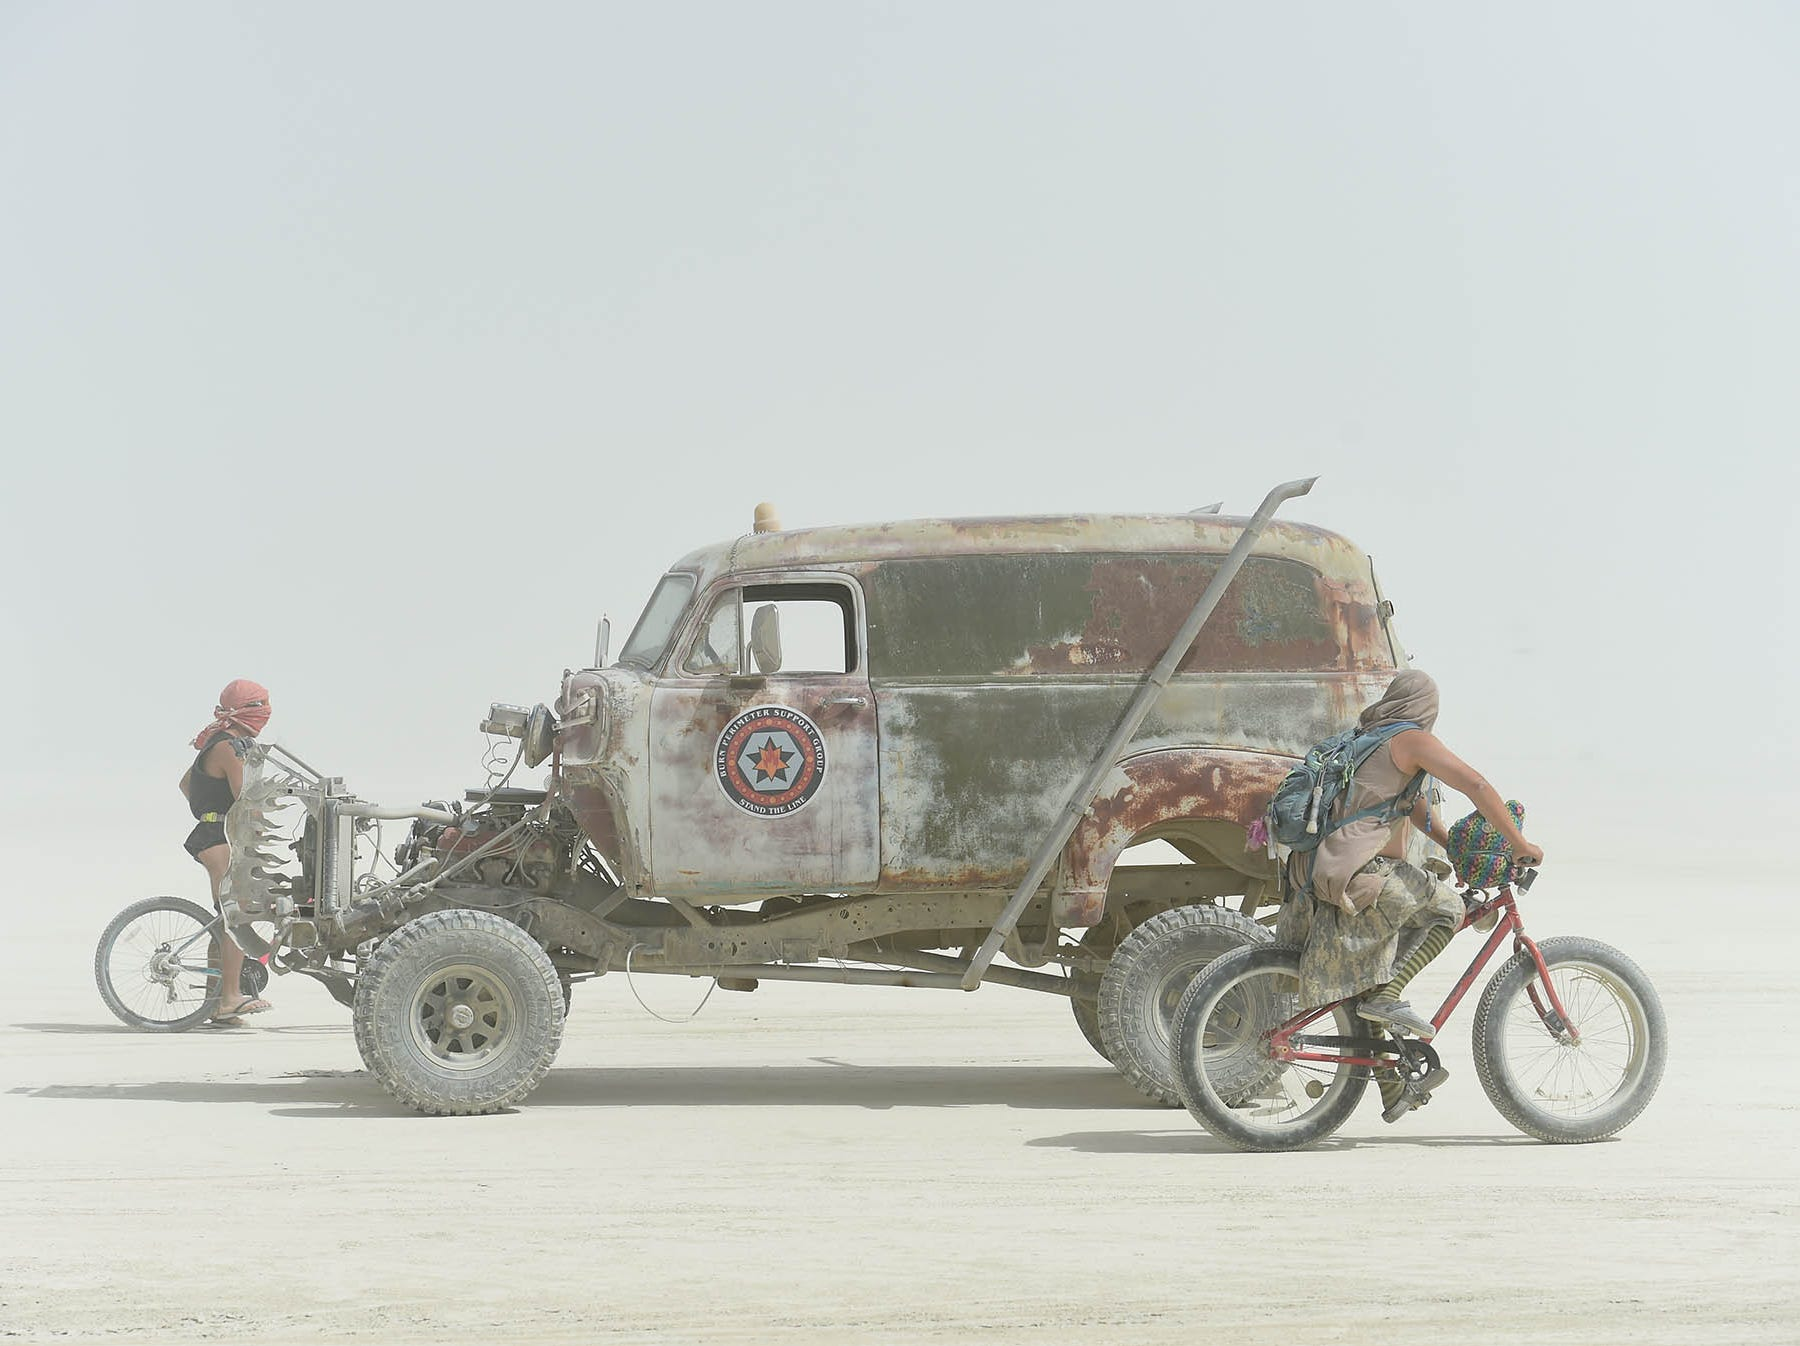 Burners have a dusty Thursday morning on the playa.